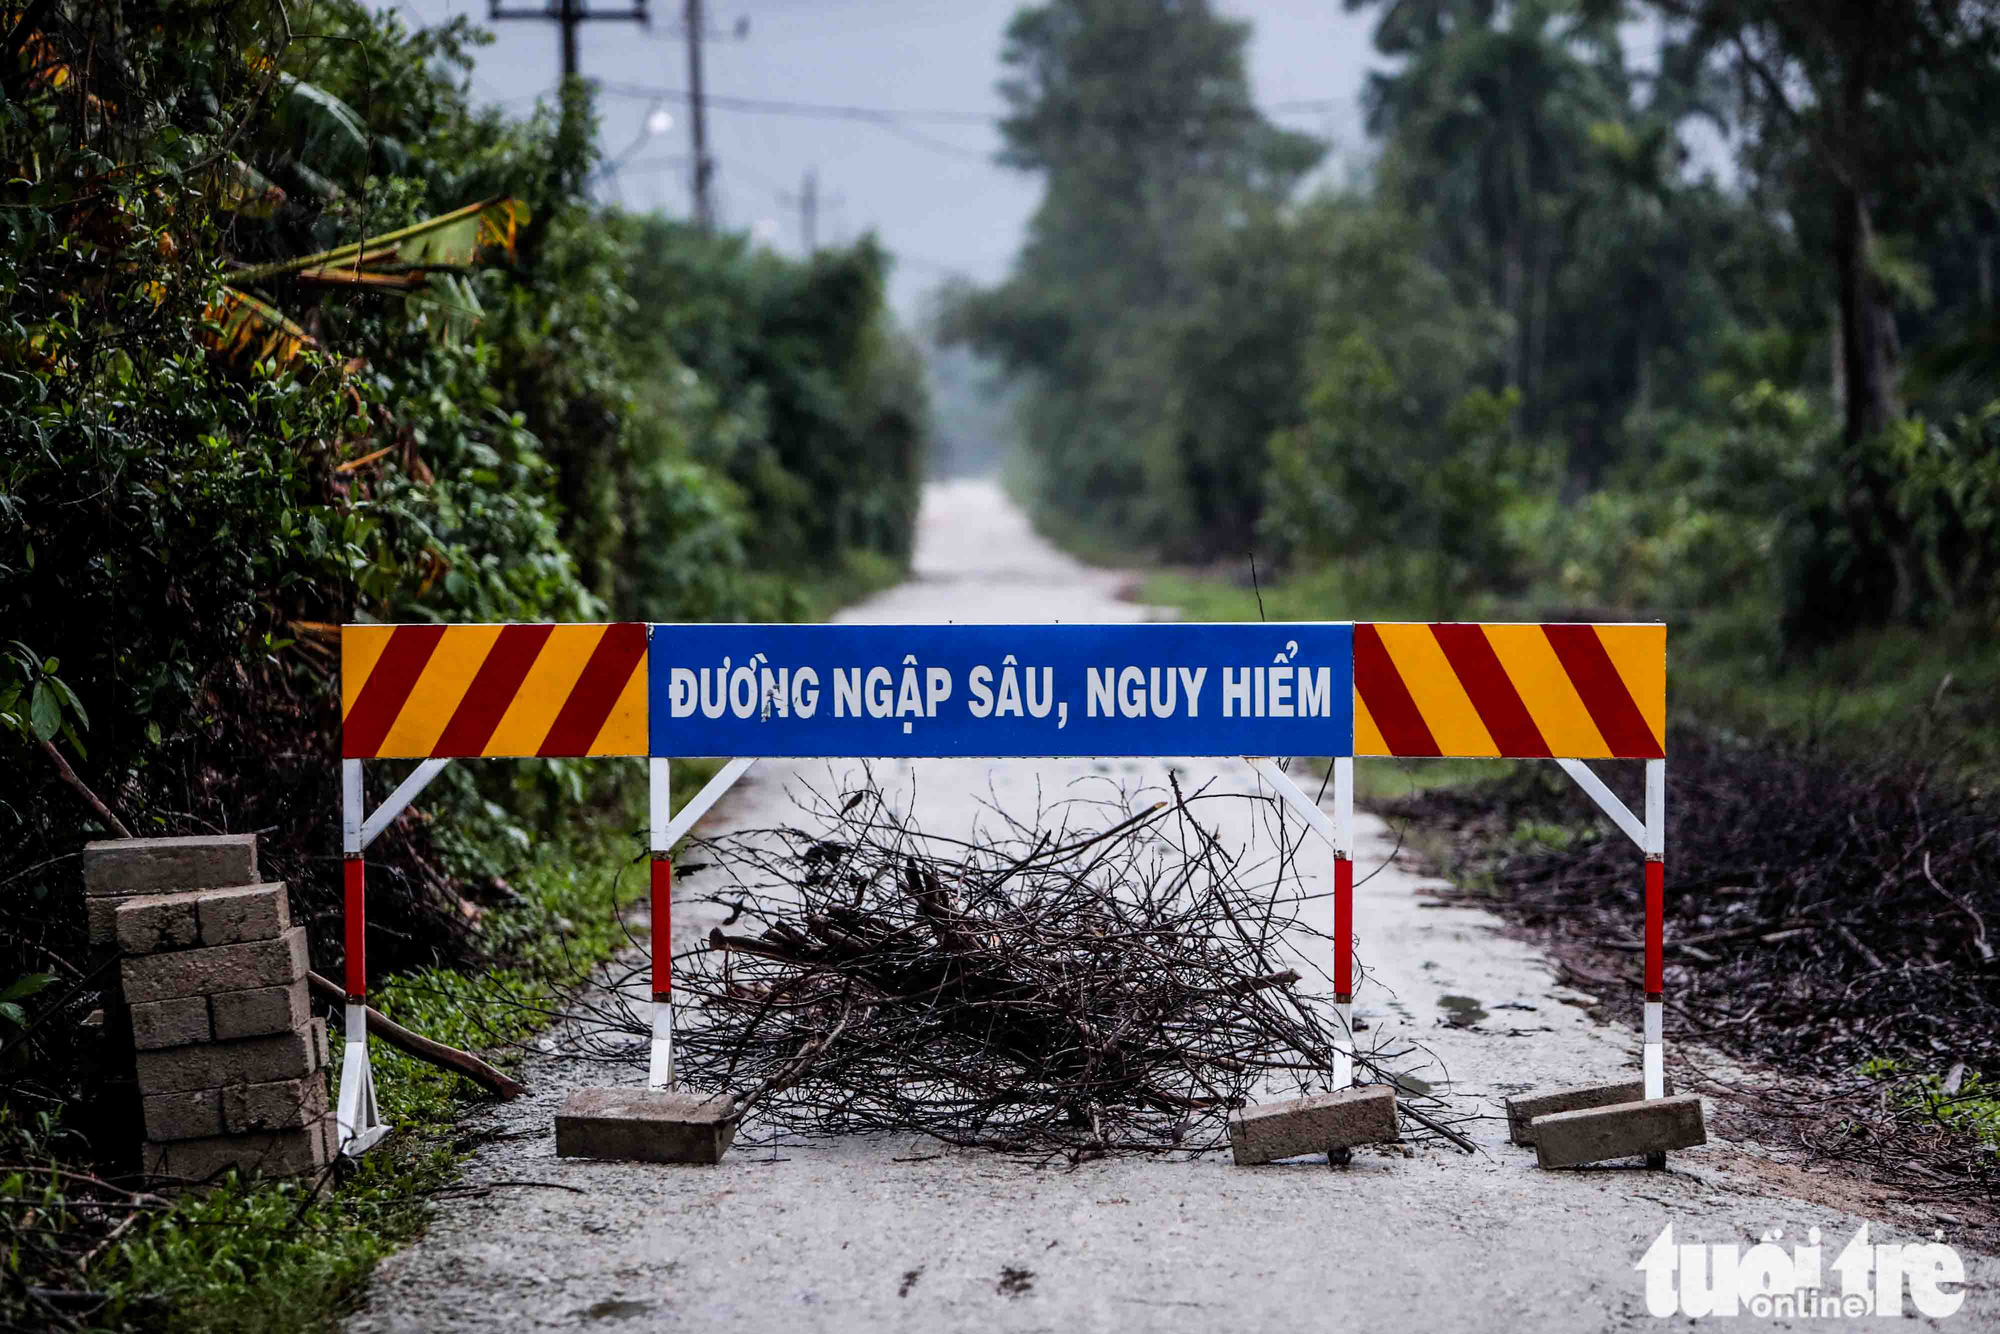 The road leading to Rao Trang 3 hydropower plant is barricaded and can only be entered by authorized rescuers and military soldiers.